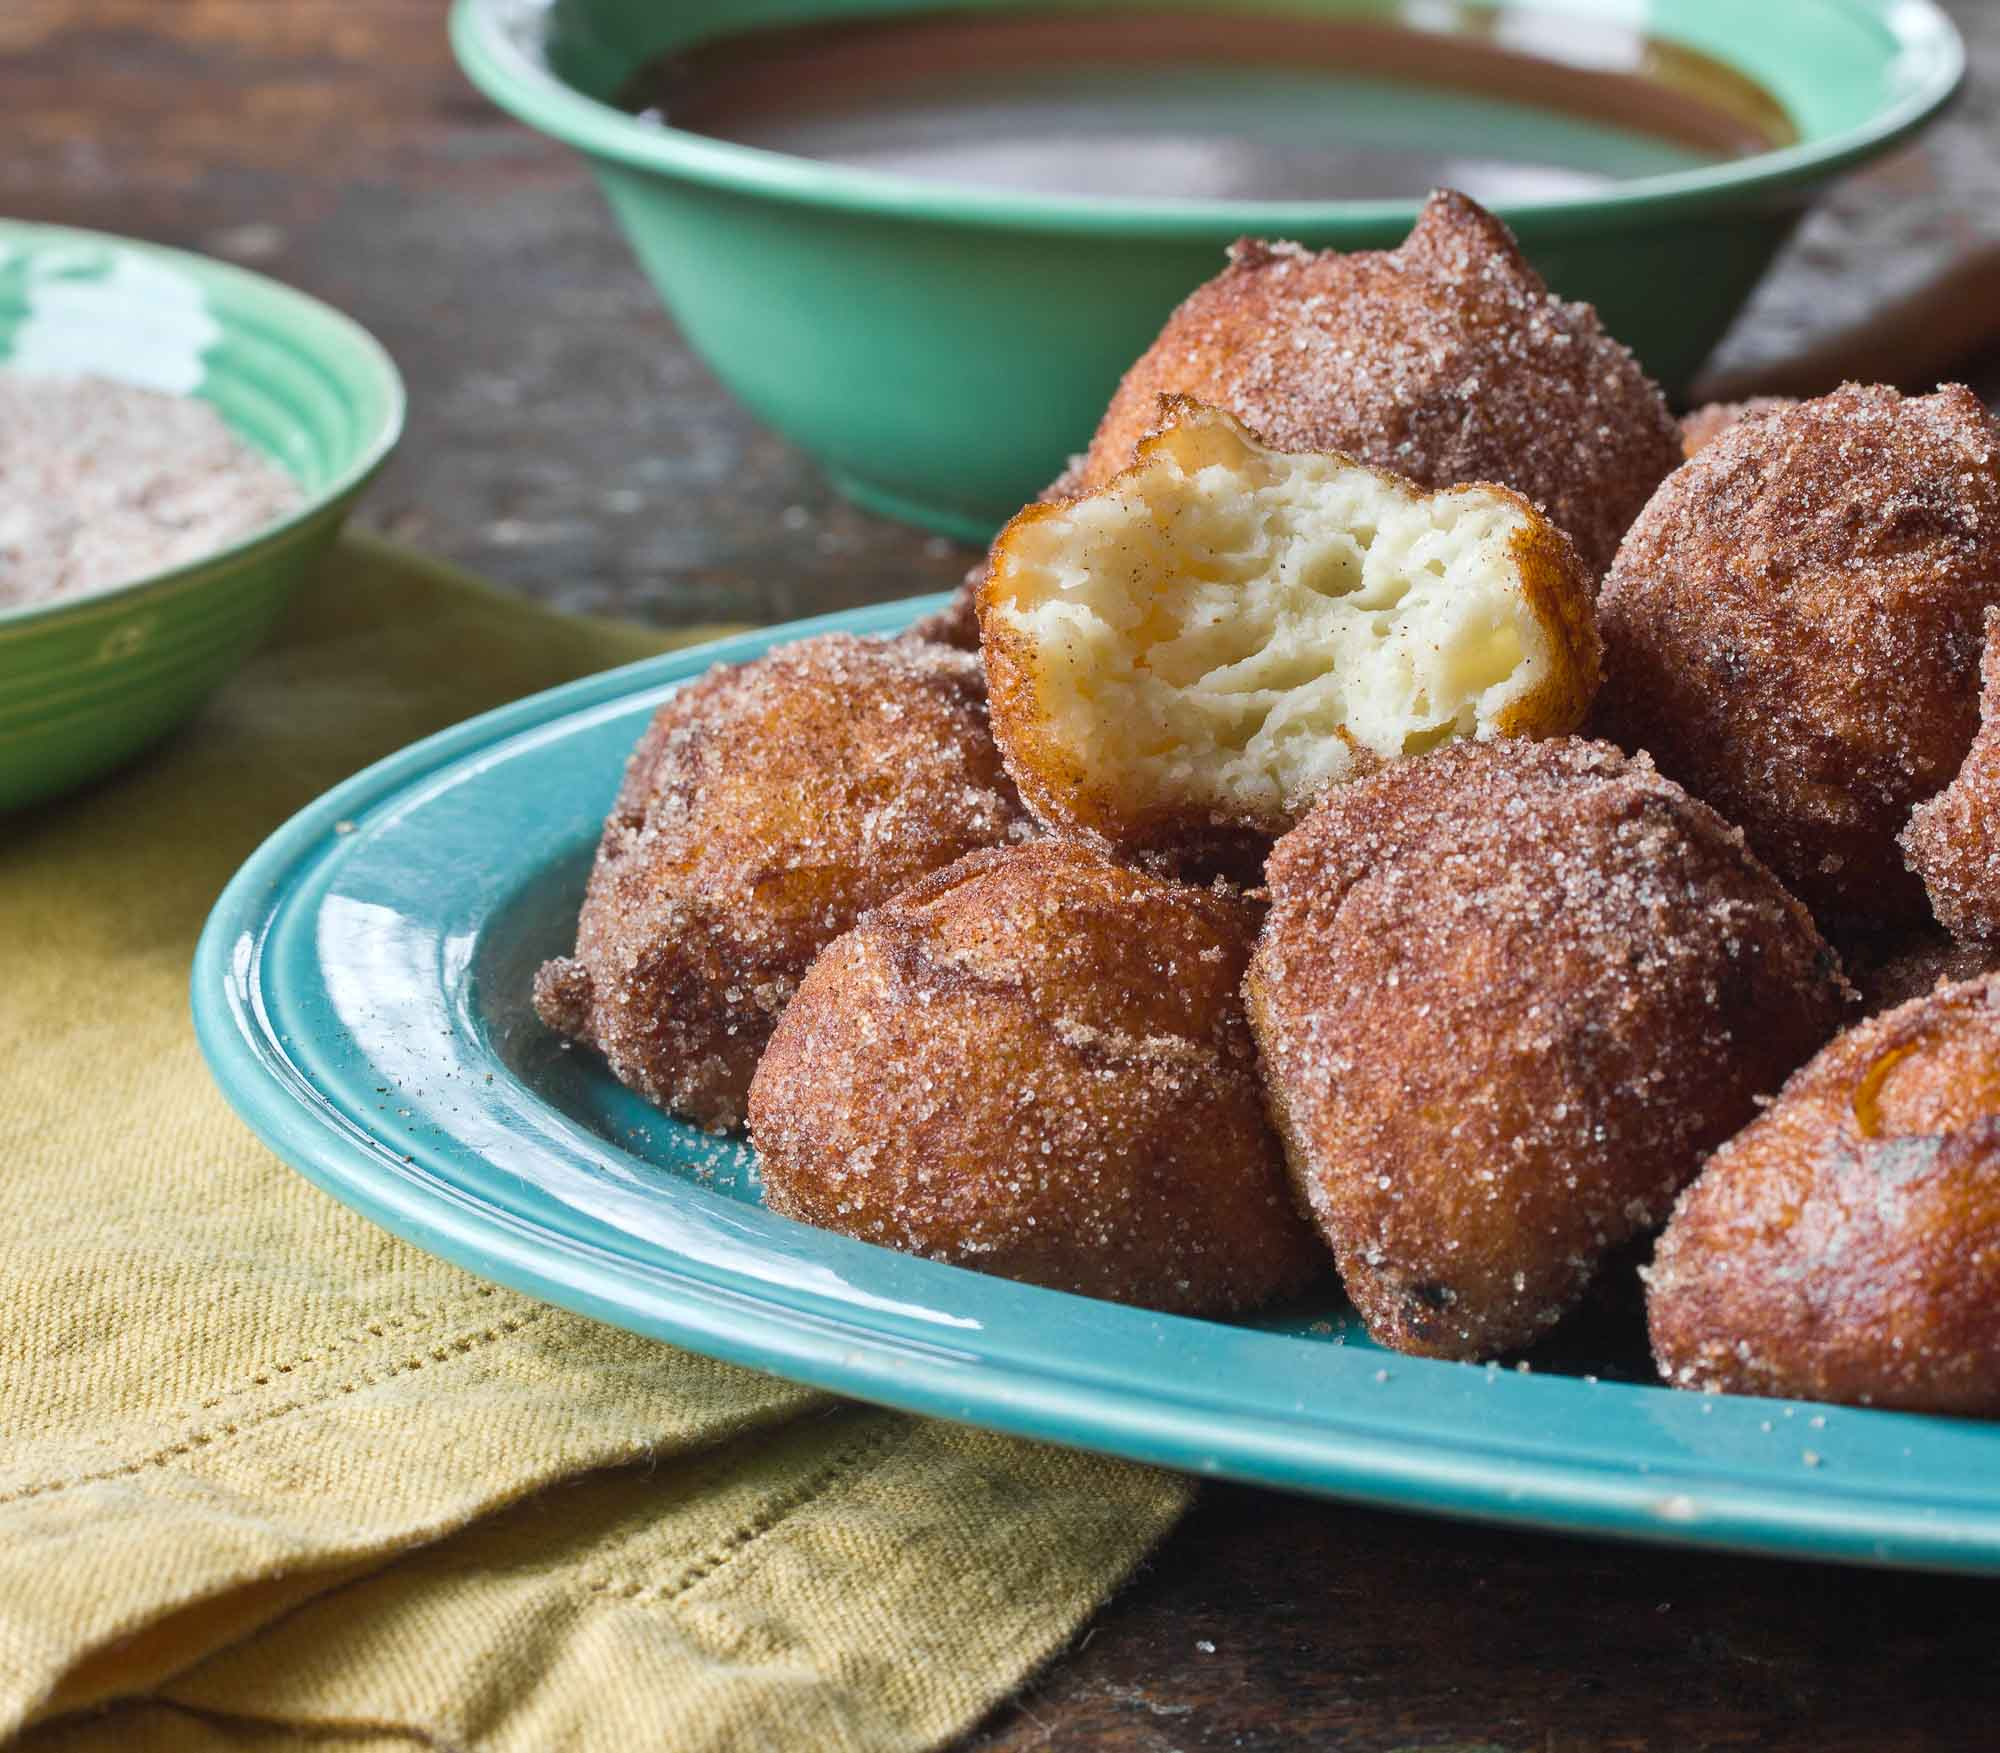 Dessert Recipe: Churros Balls With Warm Chocolate Dipping Sauce | Kitchn